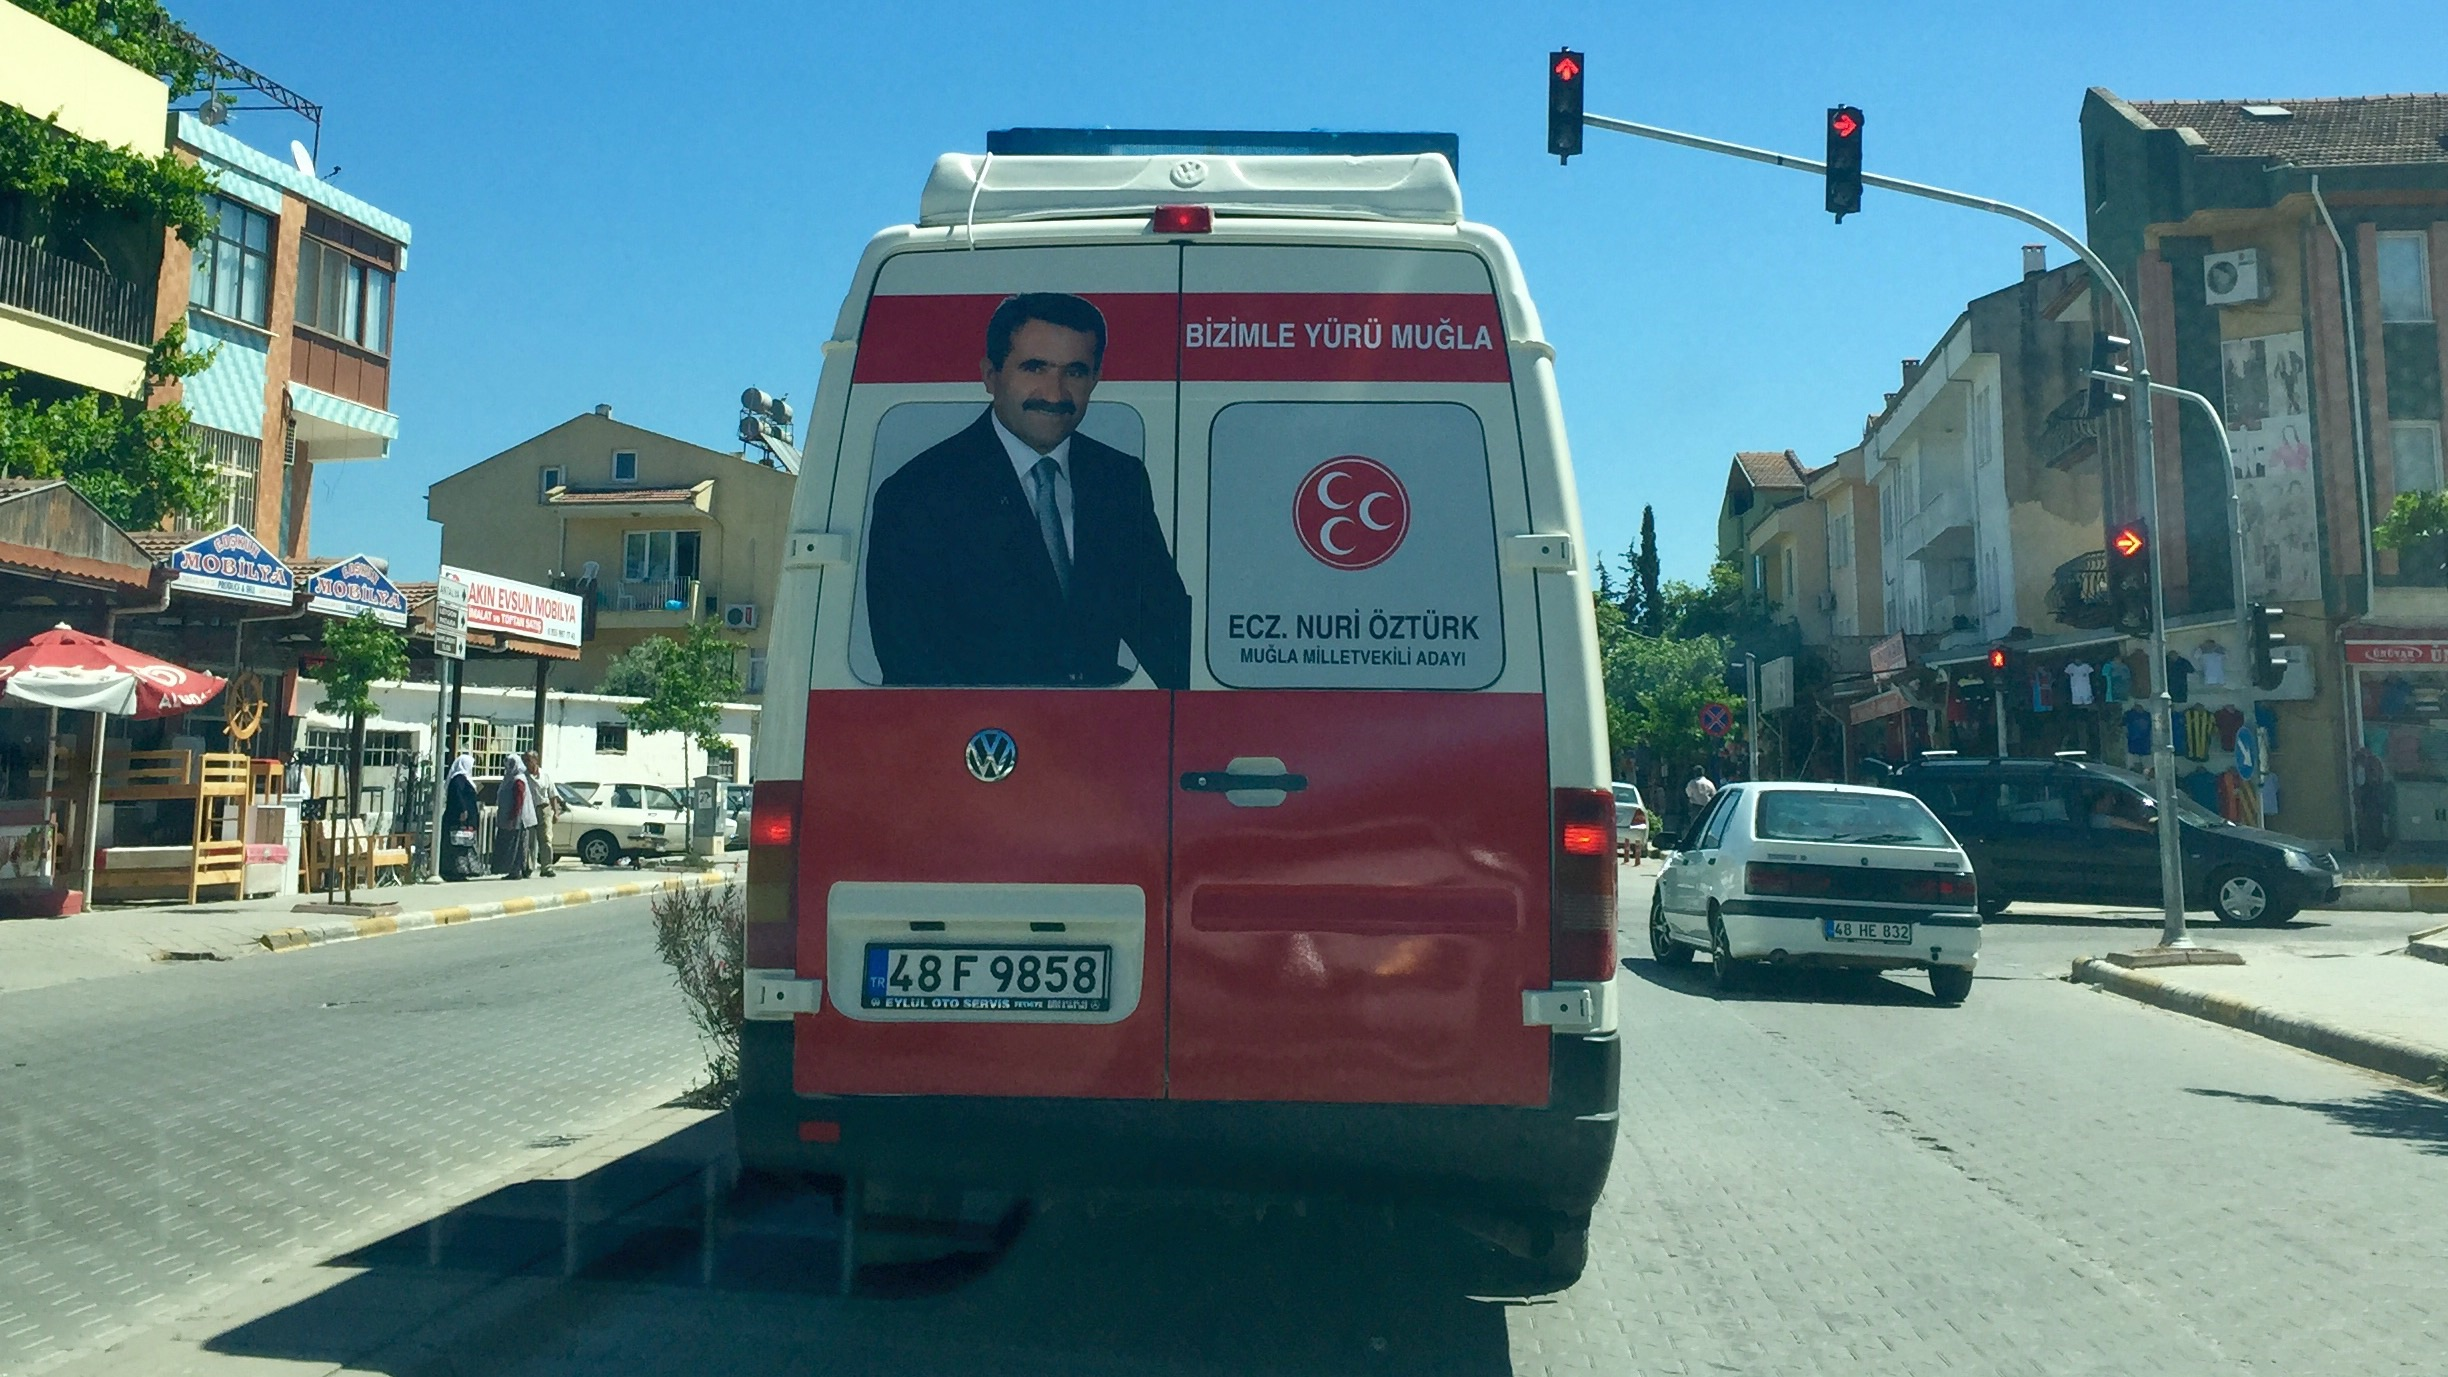 Election van for the 2015 Turkish General election in Fethiye